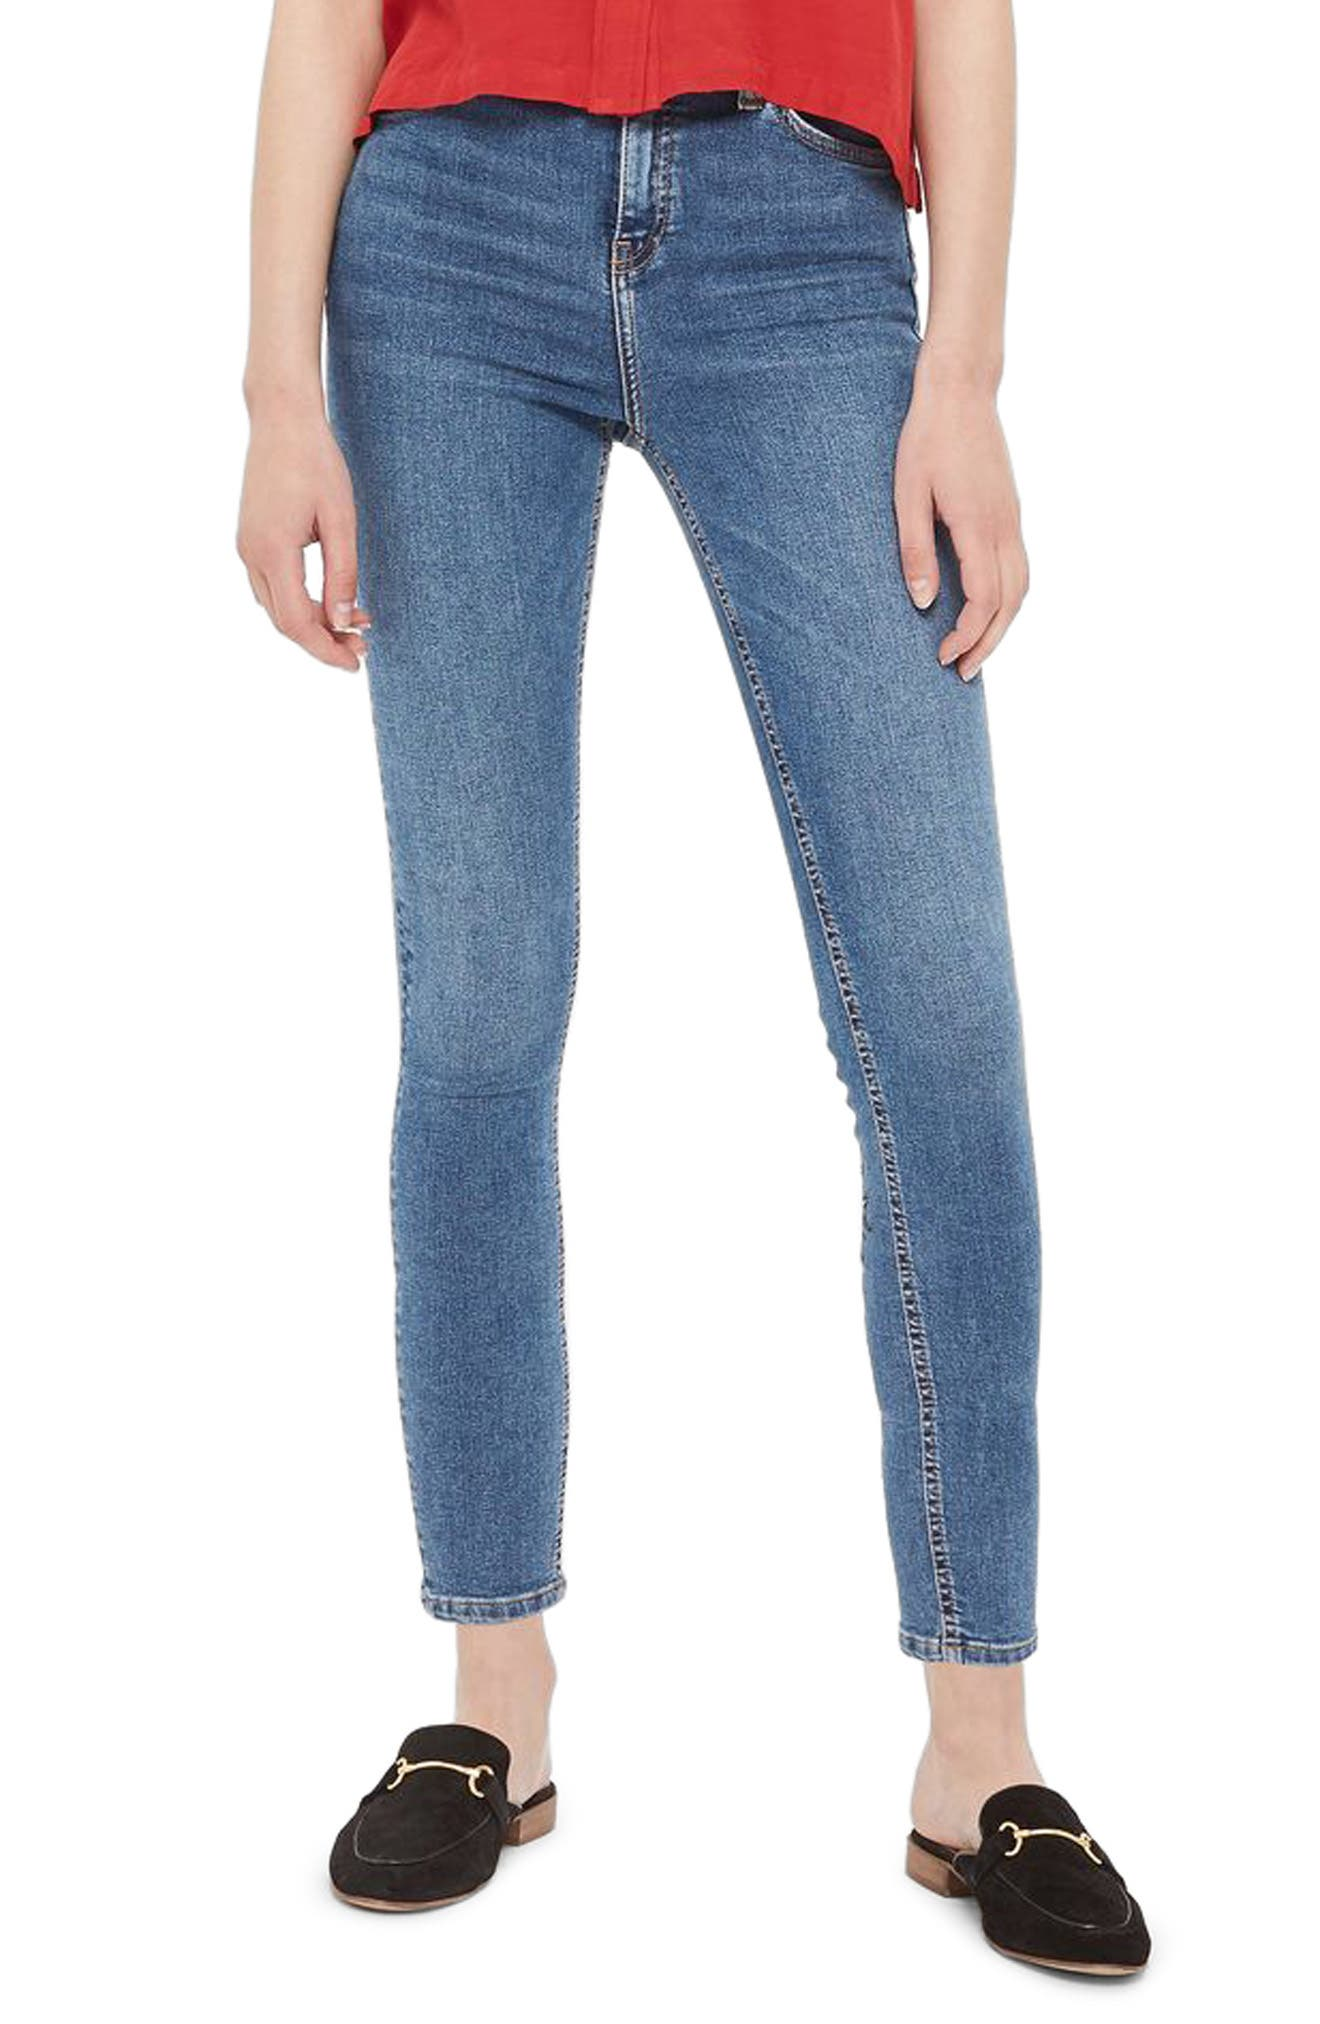 Topshop Jamie Embroidered High Rise Skinny Jeans